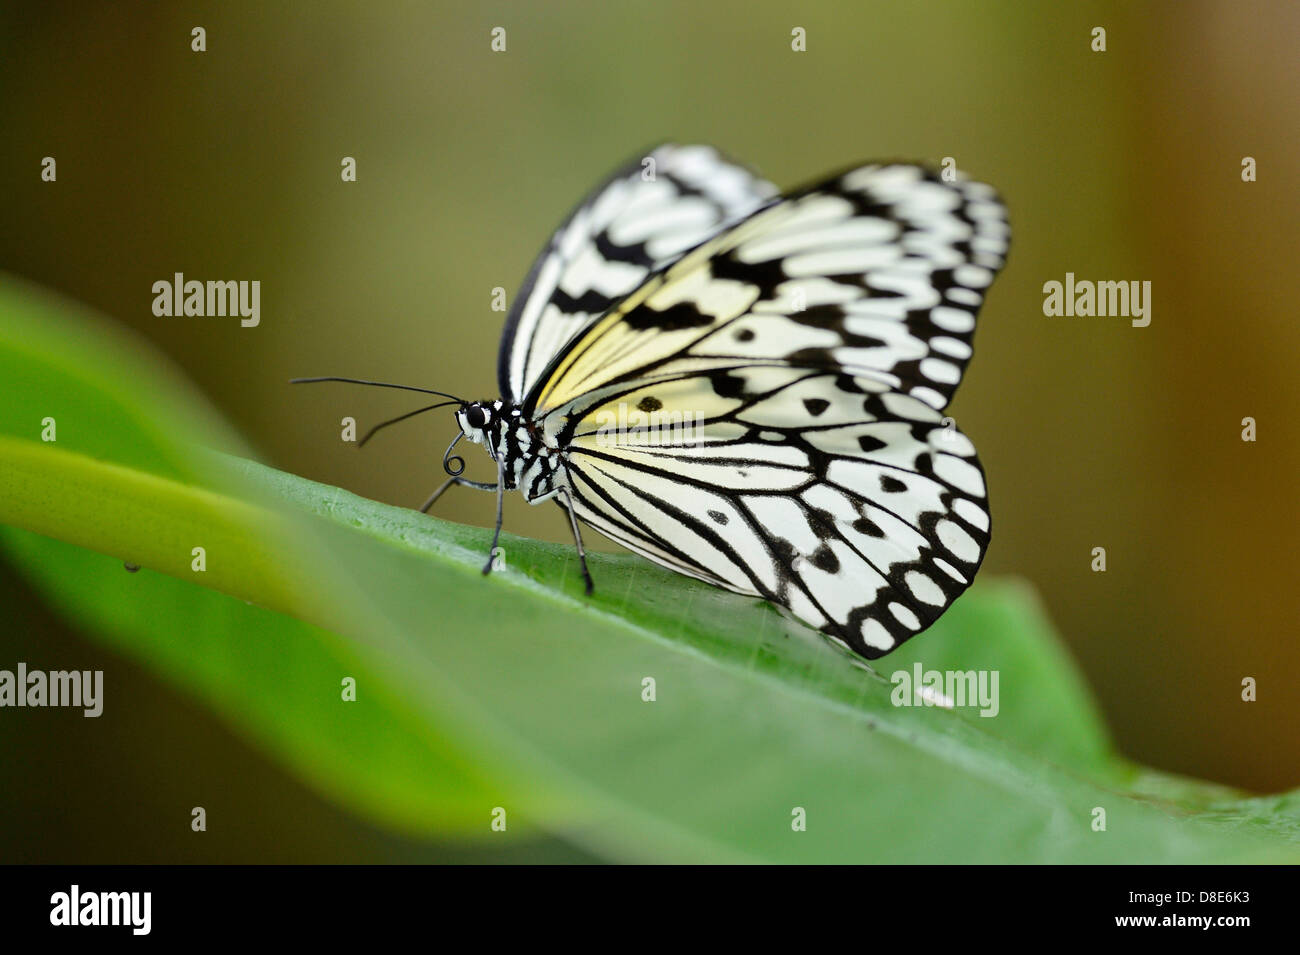 Butterfly Large Tree Nymph (Idea leuconoe) on a leaf - Stock Image